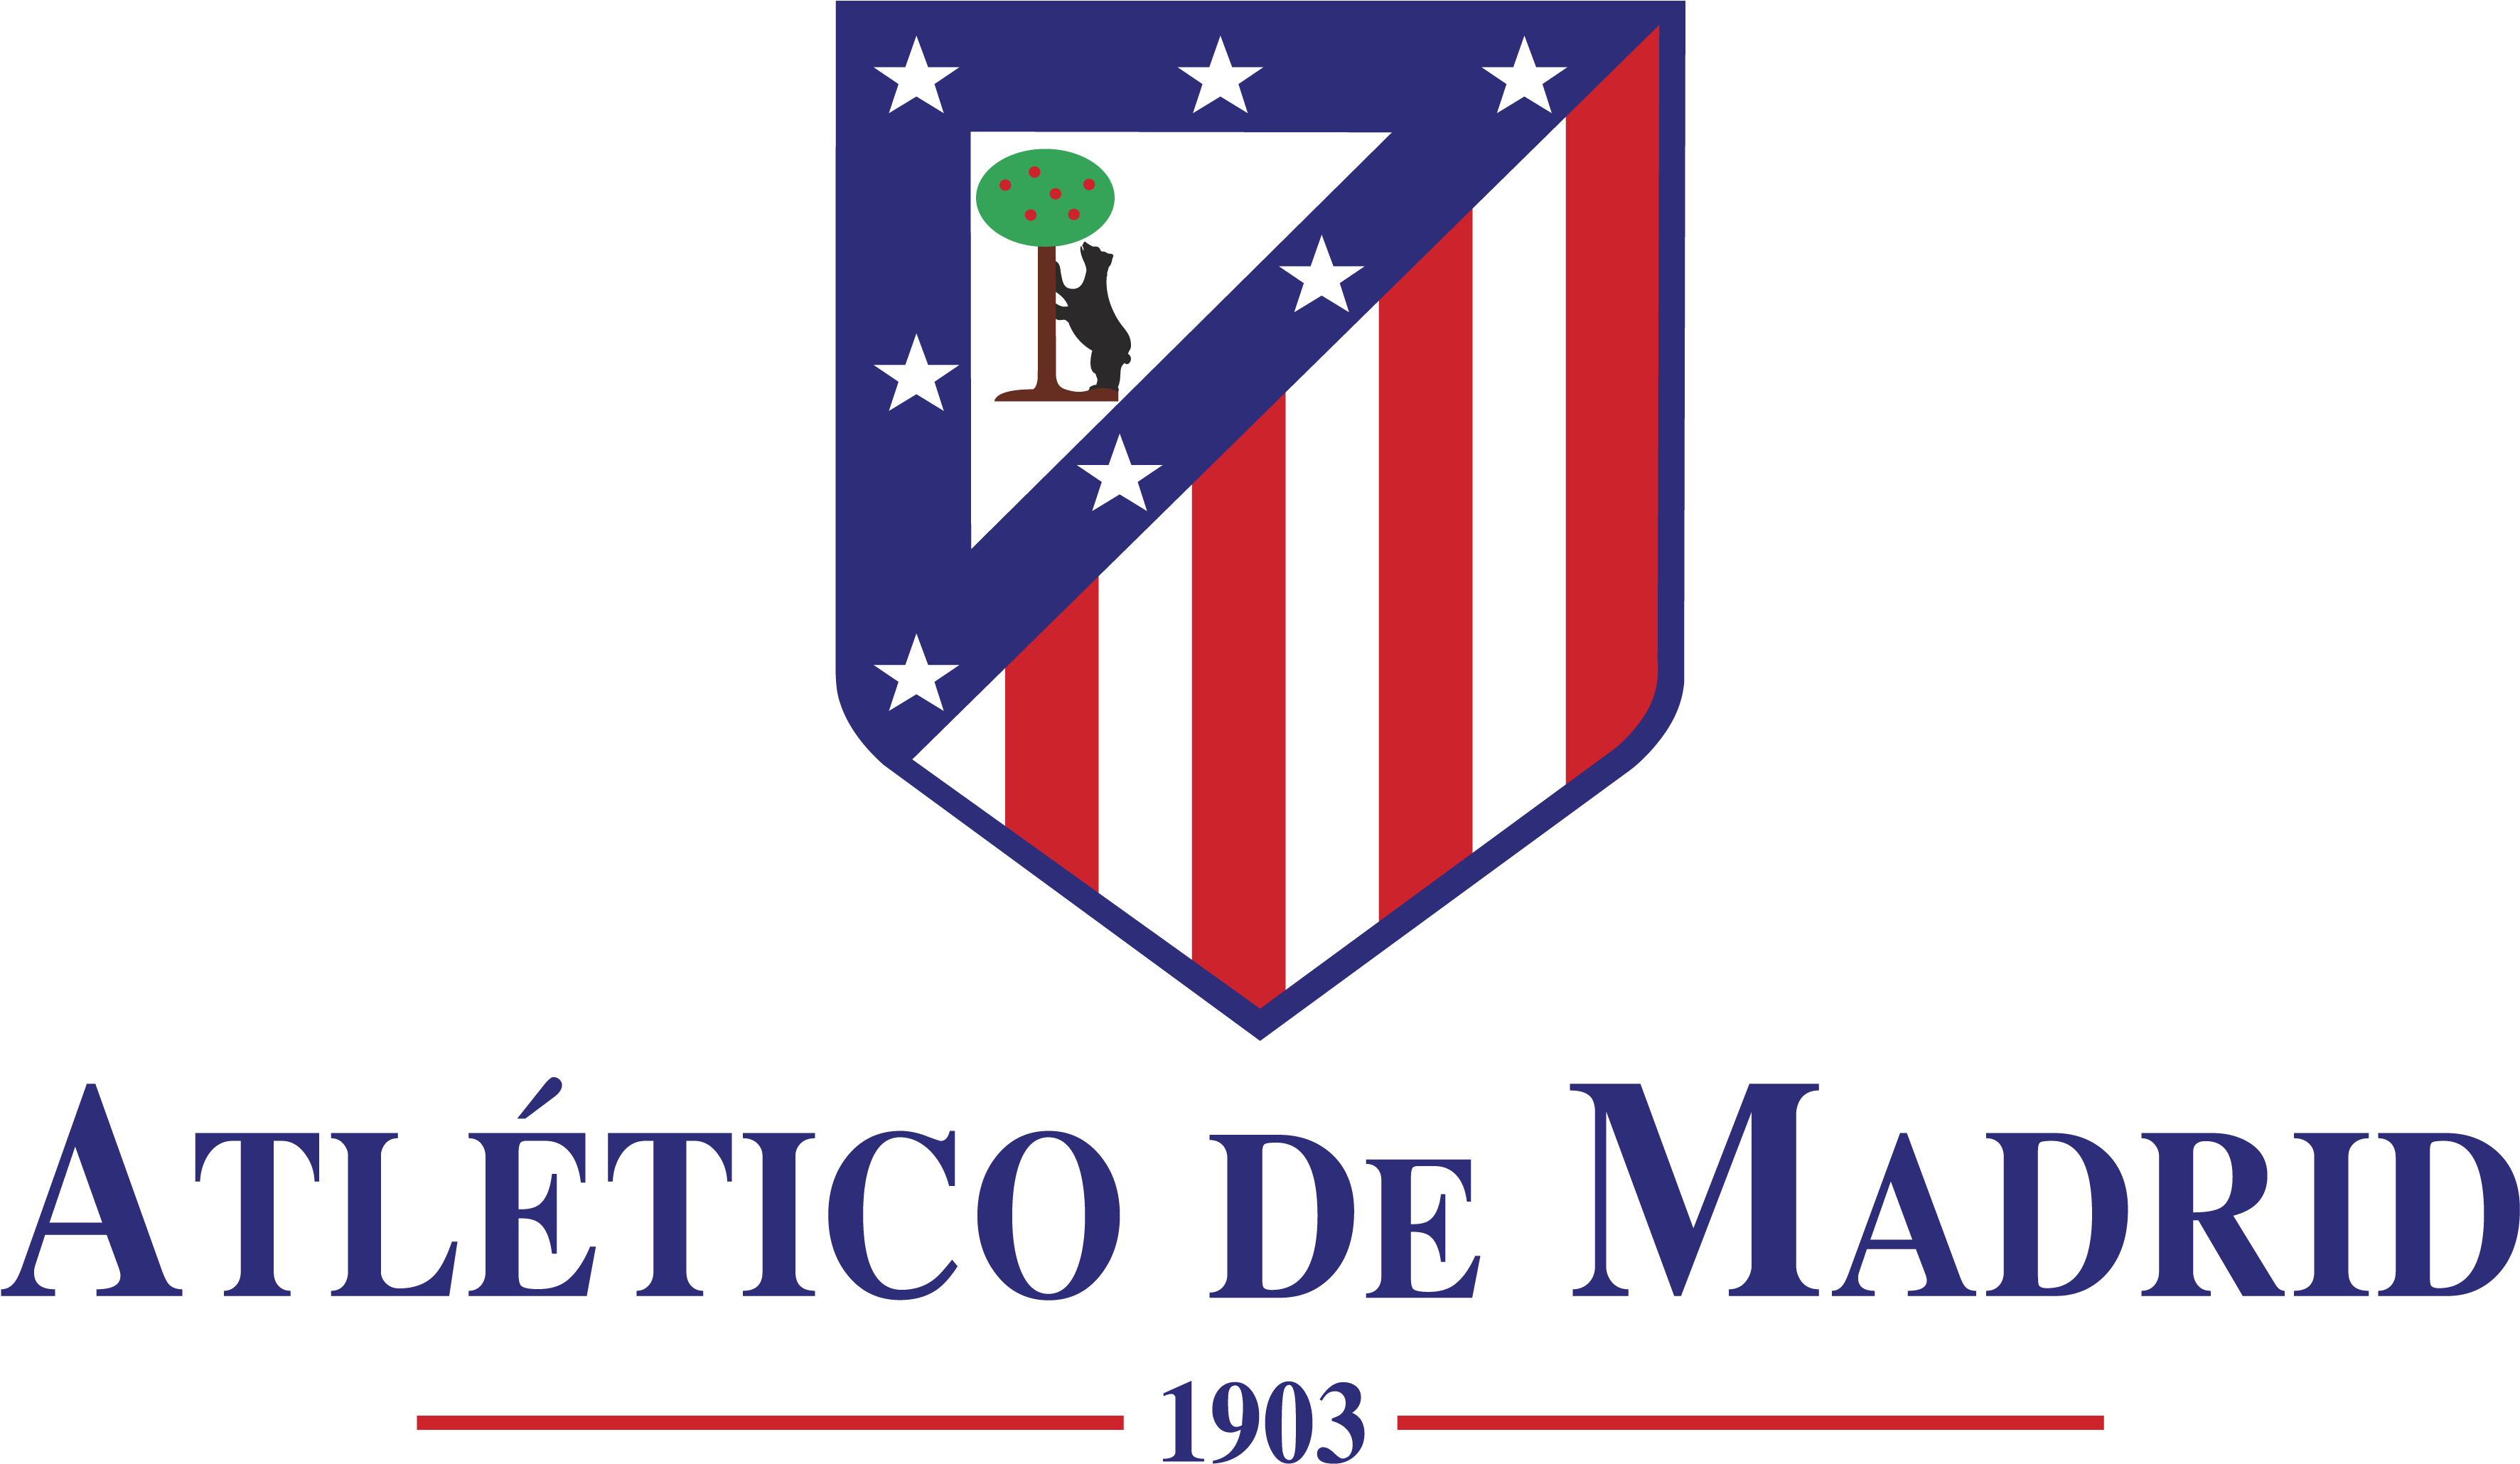 Atletico Madrid Png Atletico Madrid Logo Interesting History Of The Team Dream League Soccer Kit Atletico Madrid 17 18 2527192 Vippng